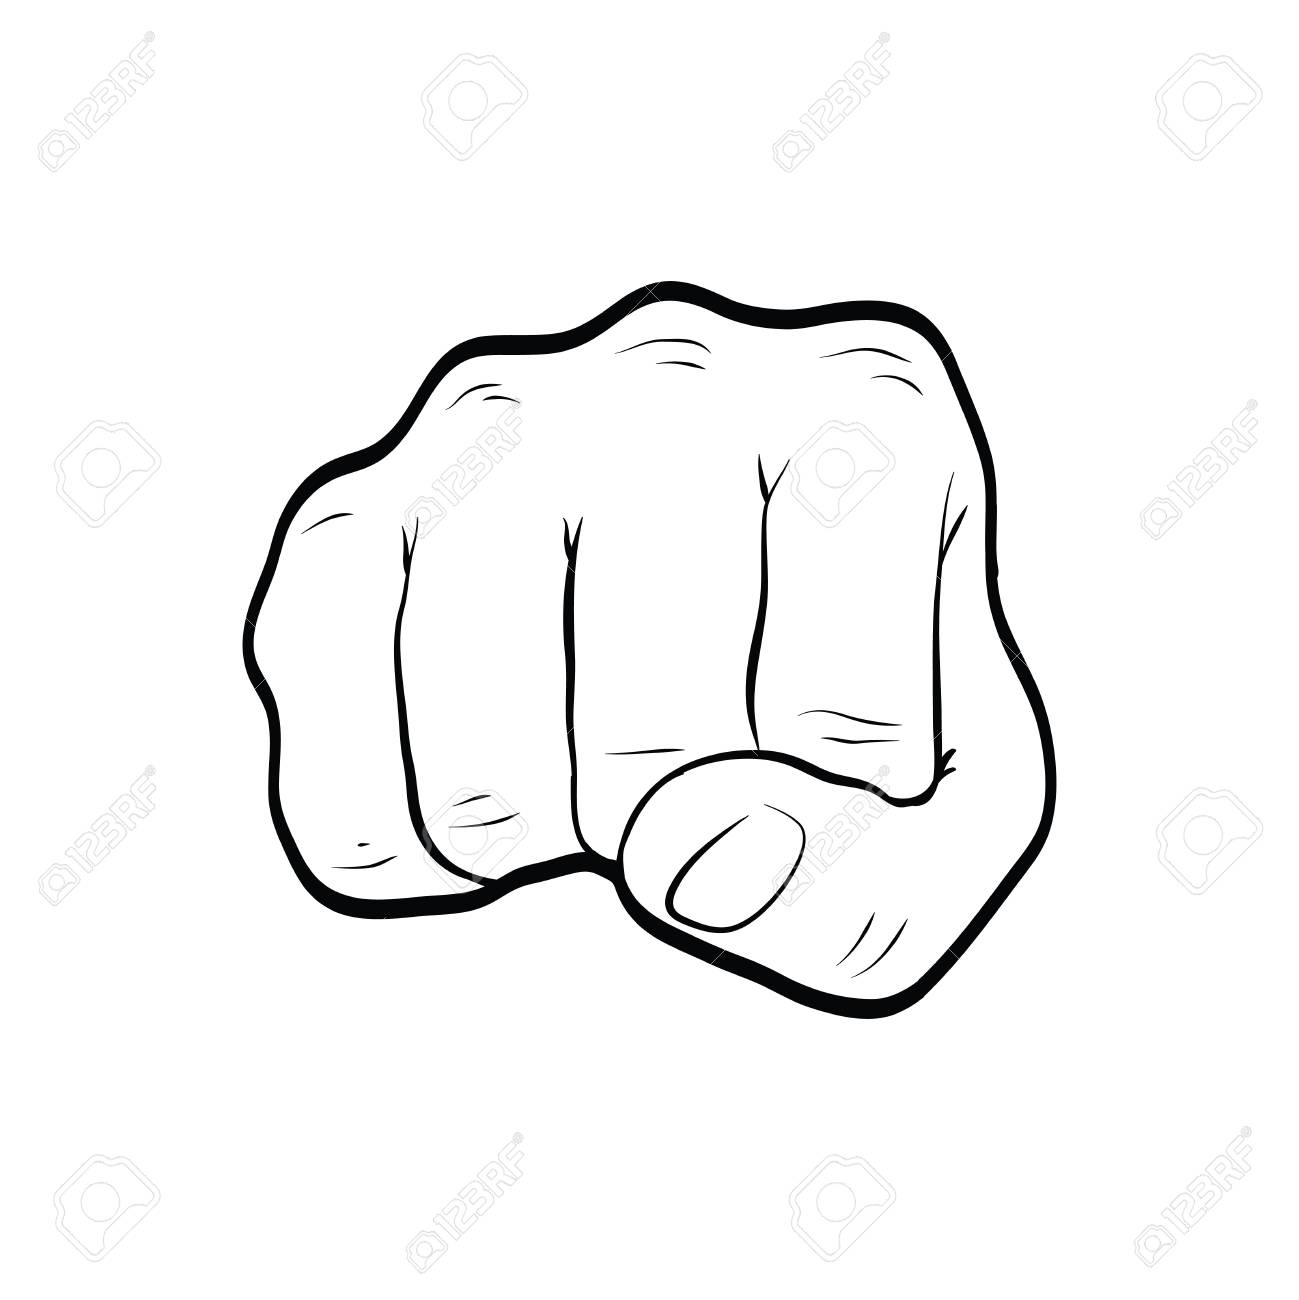 Fist Punch Hand Gesture Line Art Outline Stock Photo Picture And Royalty Free Image Image 106708969